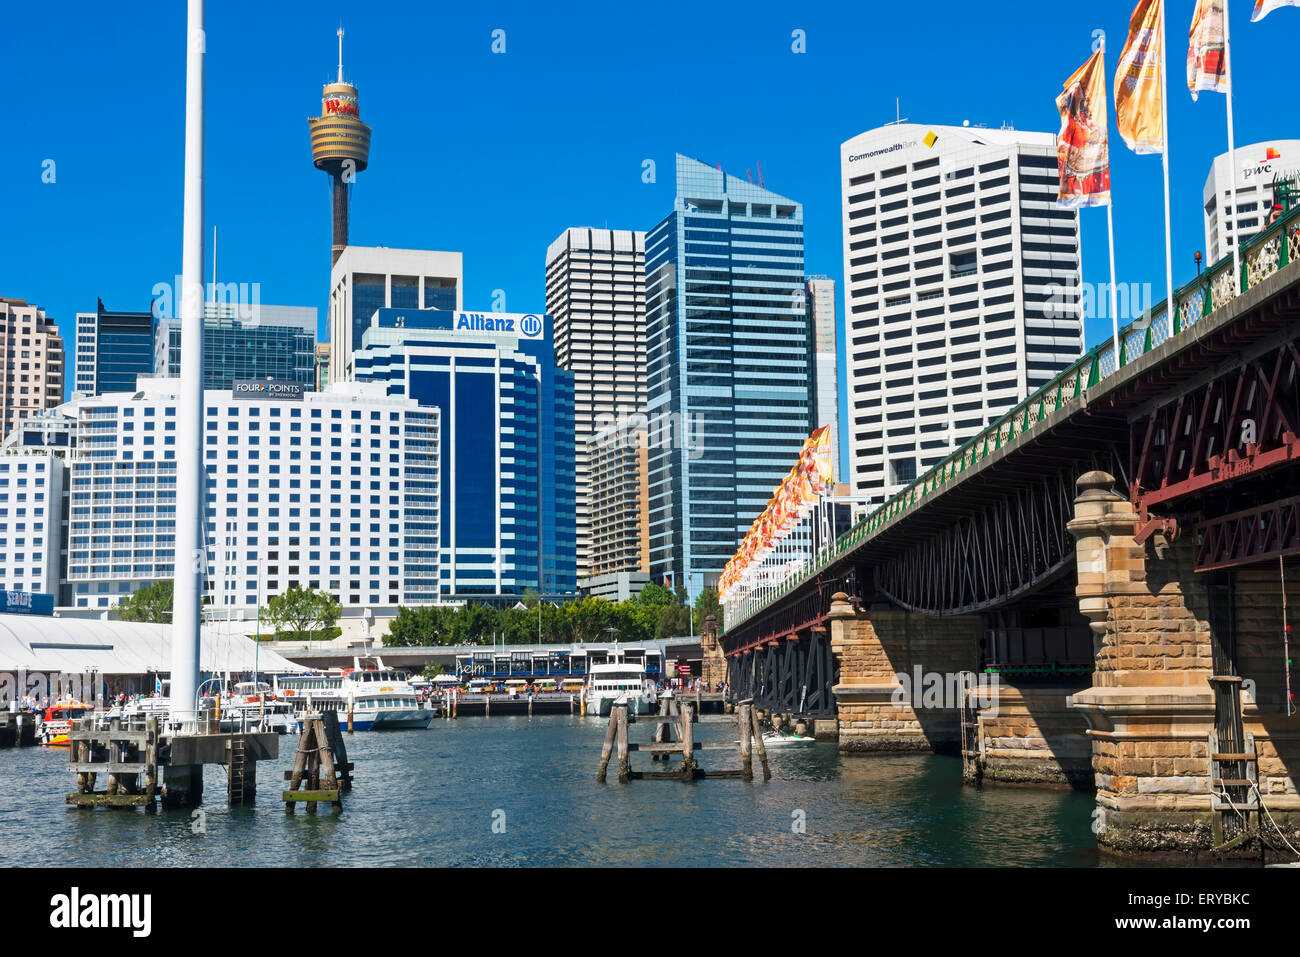 Darling Harbour, Sydney, New South Wales, Australia, - Stock Image